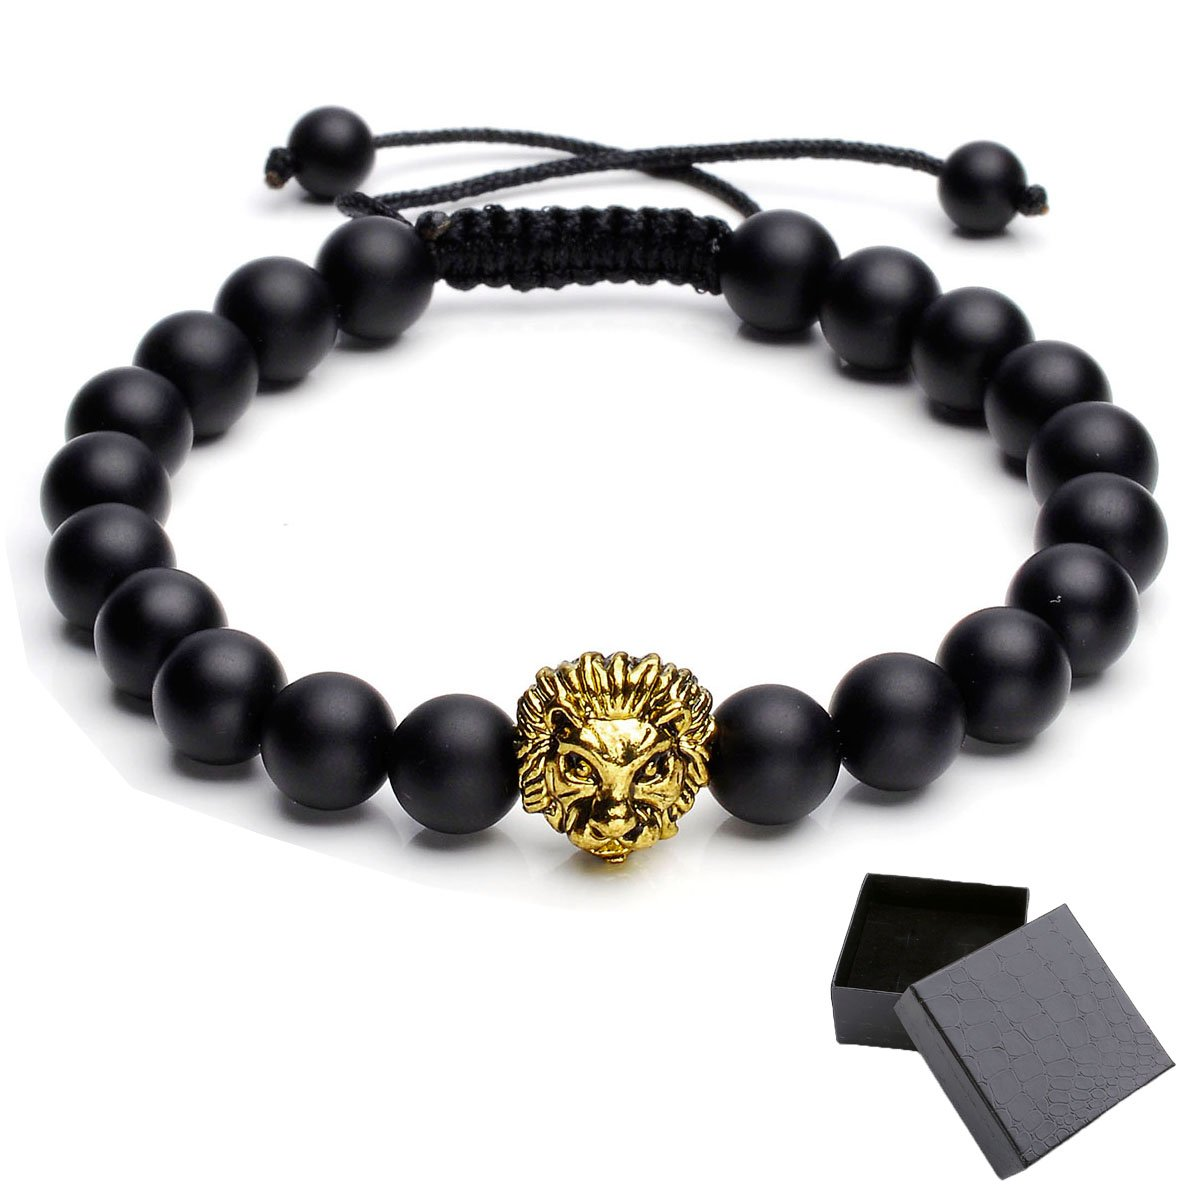 Top Plaza Jewelry Lava Rock Stone Matte Black Agate Mens Gemstone Beads Elastic Bracelet W/Gold Lion Head ATPUS62756